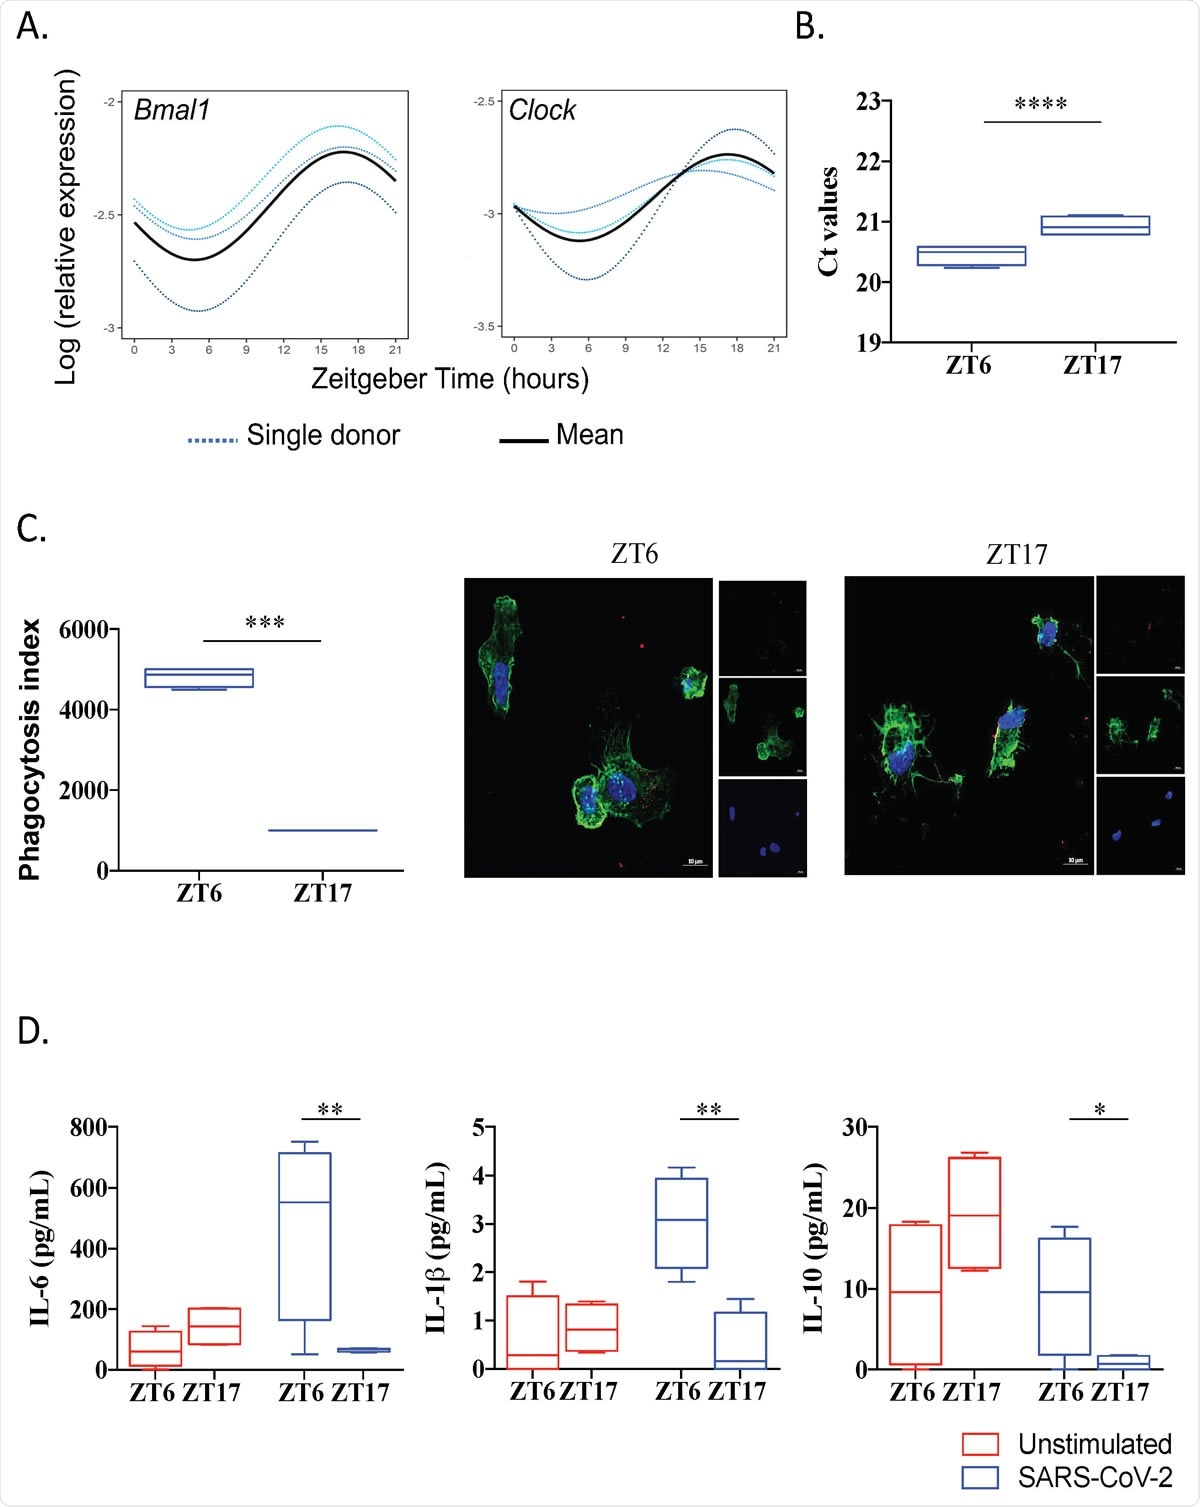 SARS-CoV-2 infection is link to circadian rhythm (A) Circadian rhythm of BMAL1 and CLOCK genes in monocyte using Cosinor model. (B) Virus load at ZT6 and ZT17 time. (C) Phagocytosis index and representative pictures of monocytes (F259 actin in green and nucleus in blue) infected by SARS-CoV-2 virus (red). (D) Level of IL-6, IL-1 and IL-10 of unstimulated (red) and infected cells at ZT6 and ZT17.